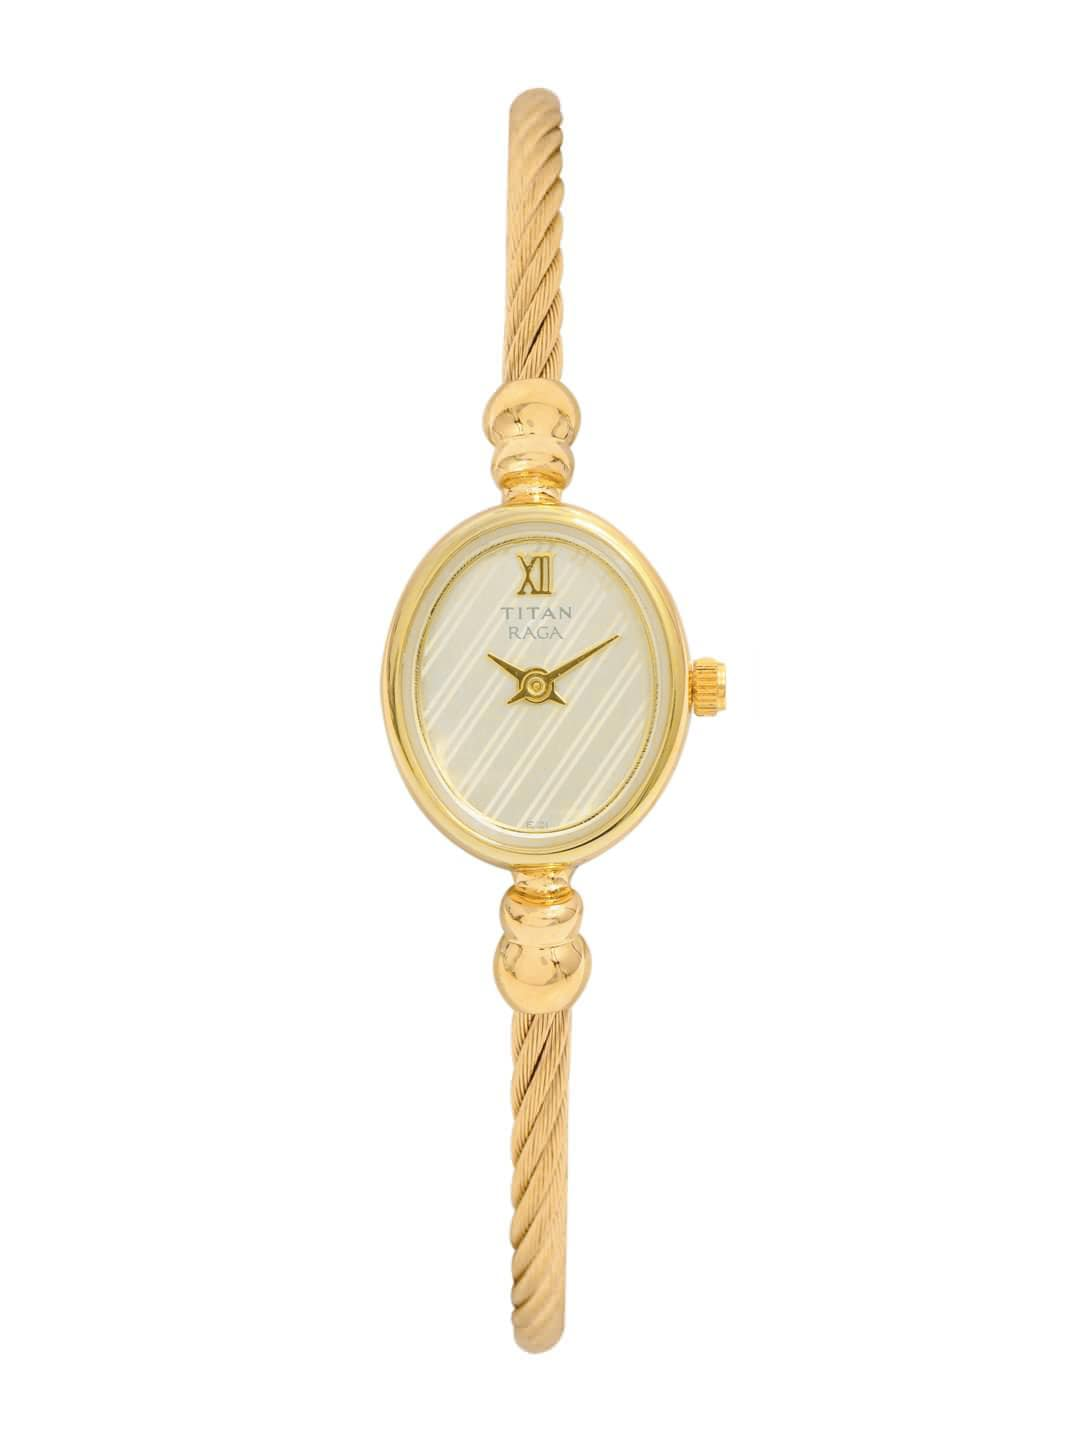 Titan Women Watches Price List In India 10 December 2018 Alexandre Christie Ac 8495 Black Gold Raga Cream Coloured Dial Watch Nb197ym01